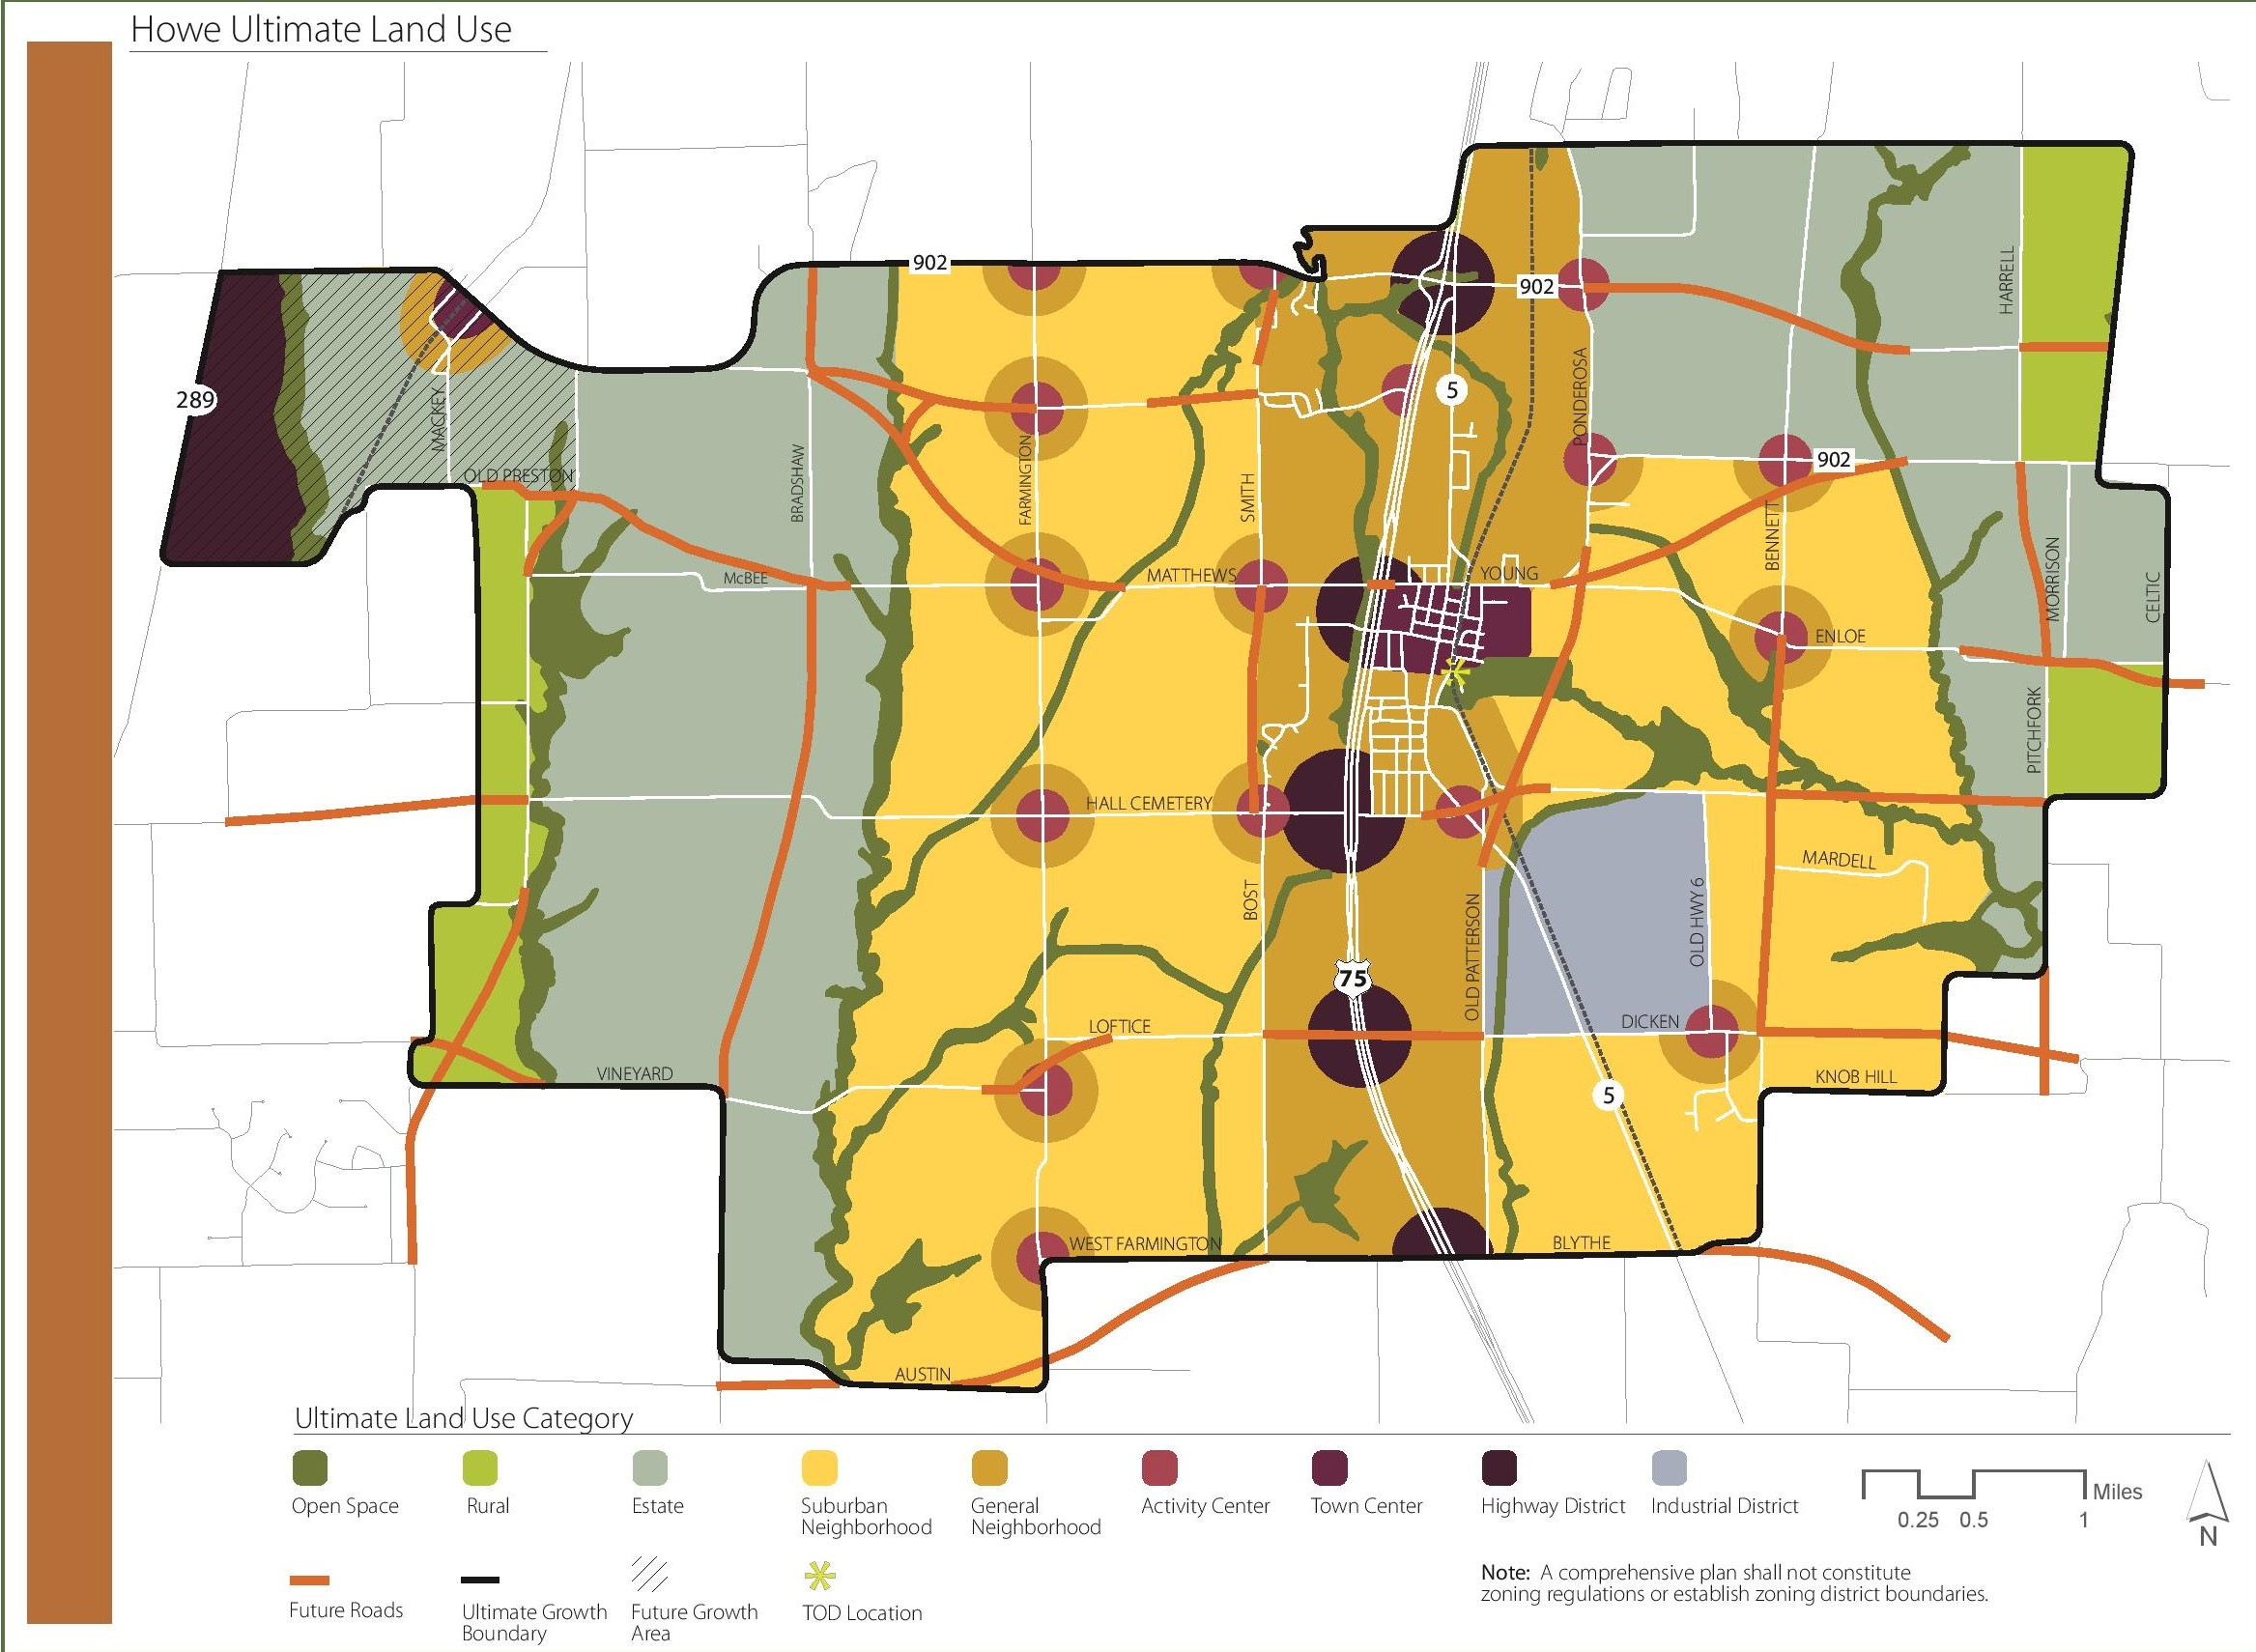 City-of-Howe_Comprehensive_Plan_FINAL_Adopted11-5-10-page-043